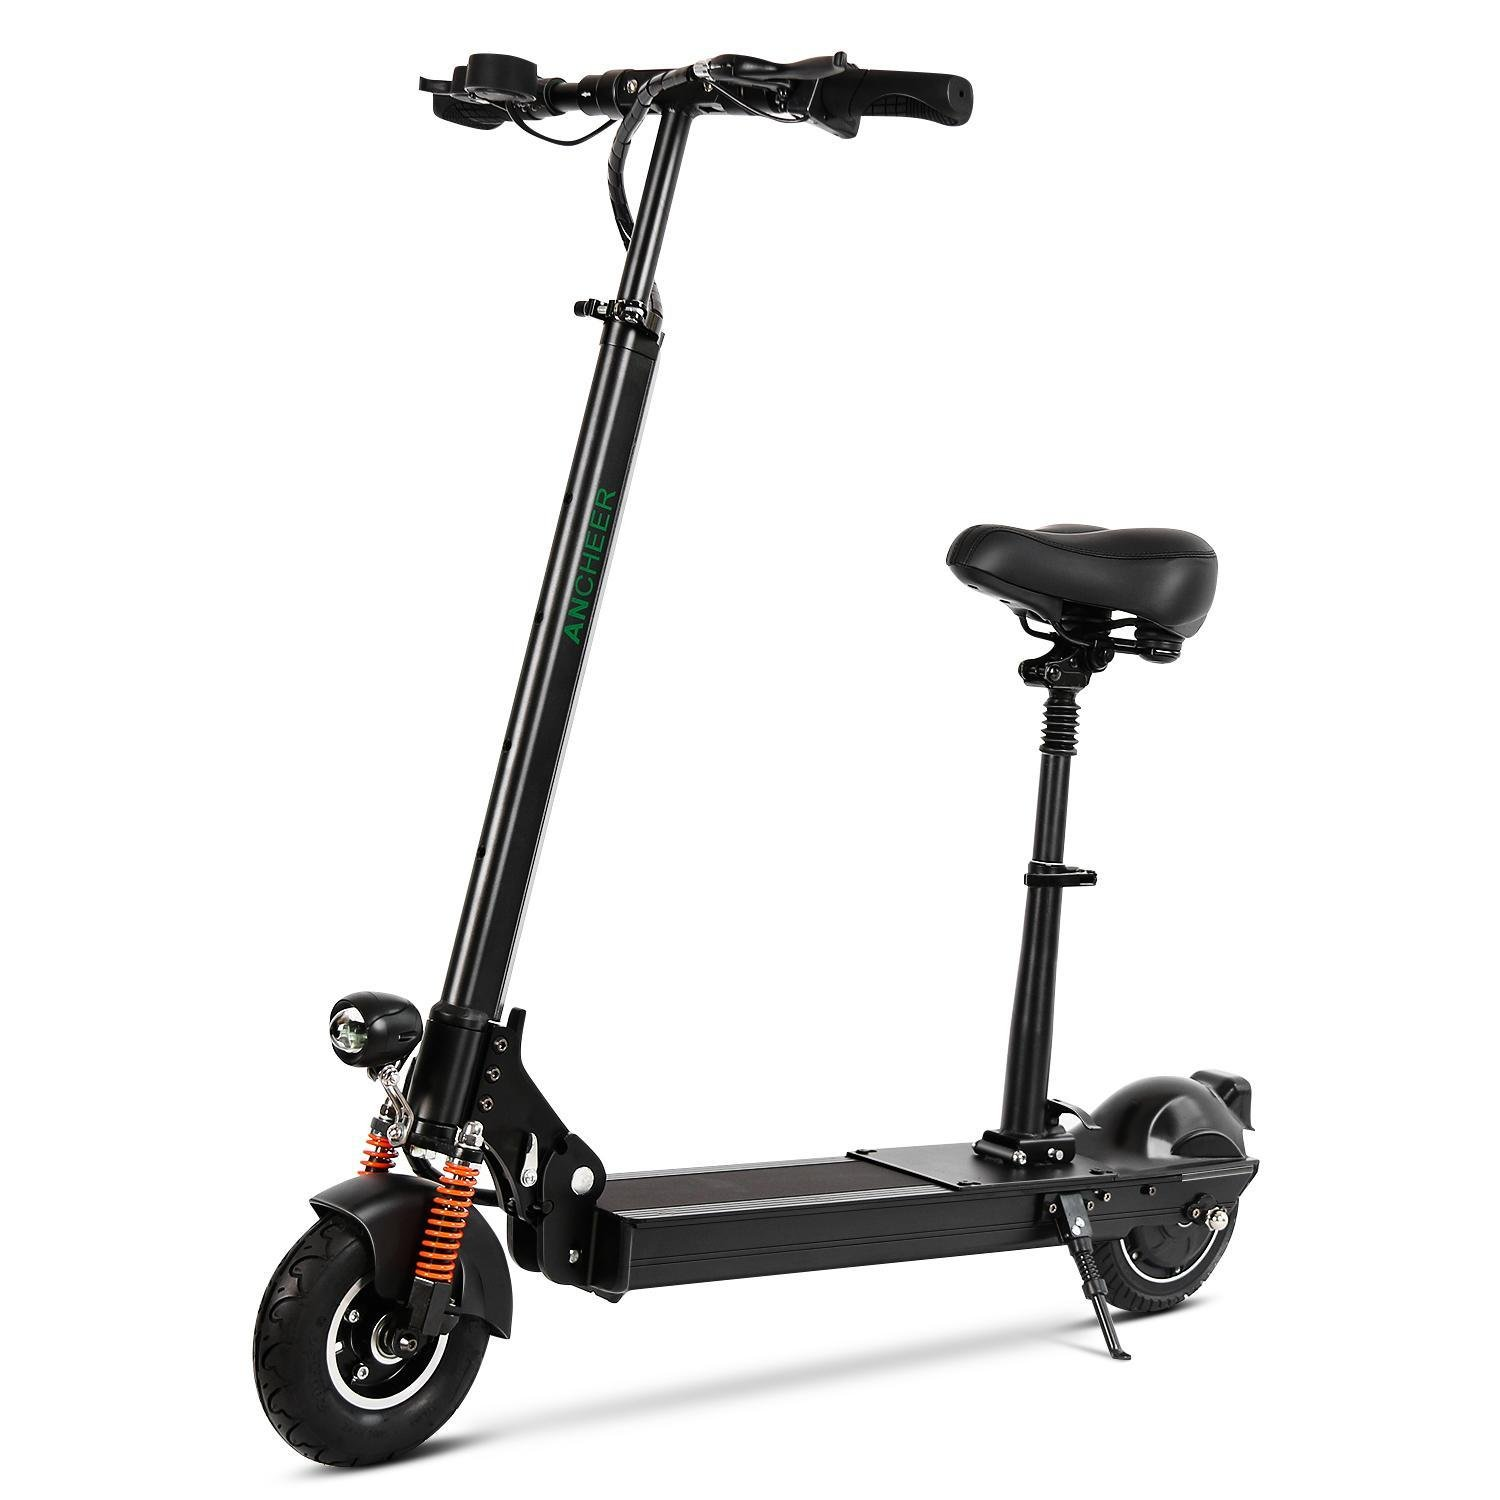 Dickin Adult 18650 Li-on Battery Foldable Lightweight Electric Scooter Black